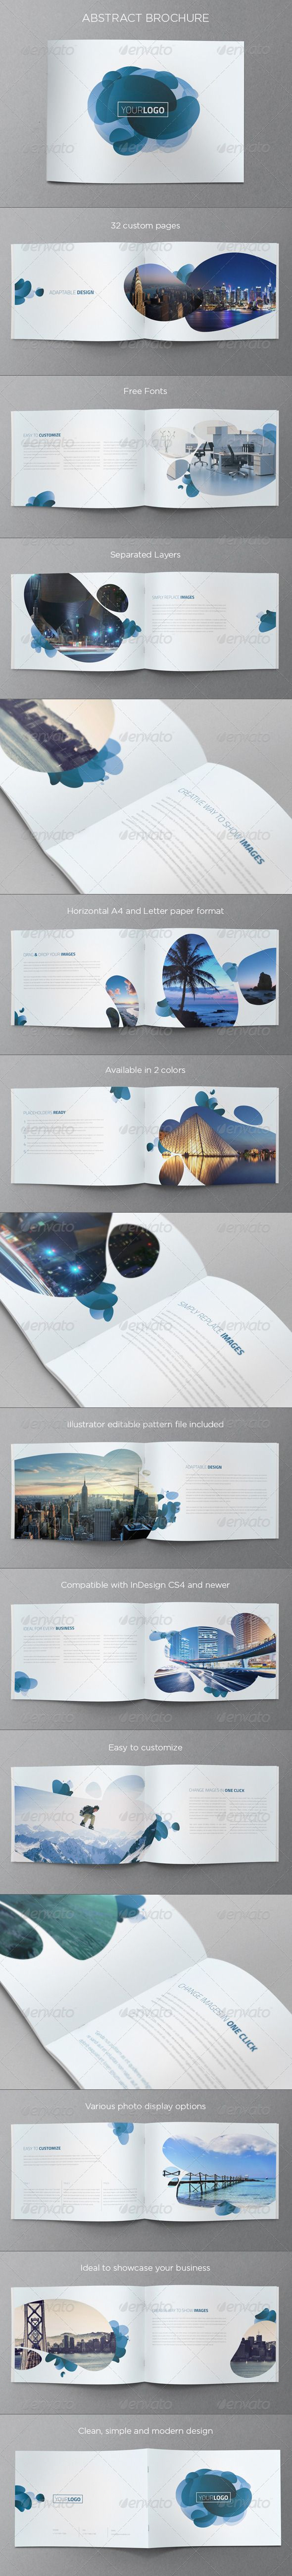 Abstract Modern Brochure — InDesign INDD #clean #blue • Available here → https://graphicriver.net/item/abstract-modern-brochure/5234402?ref=pxcr